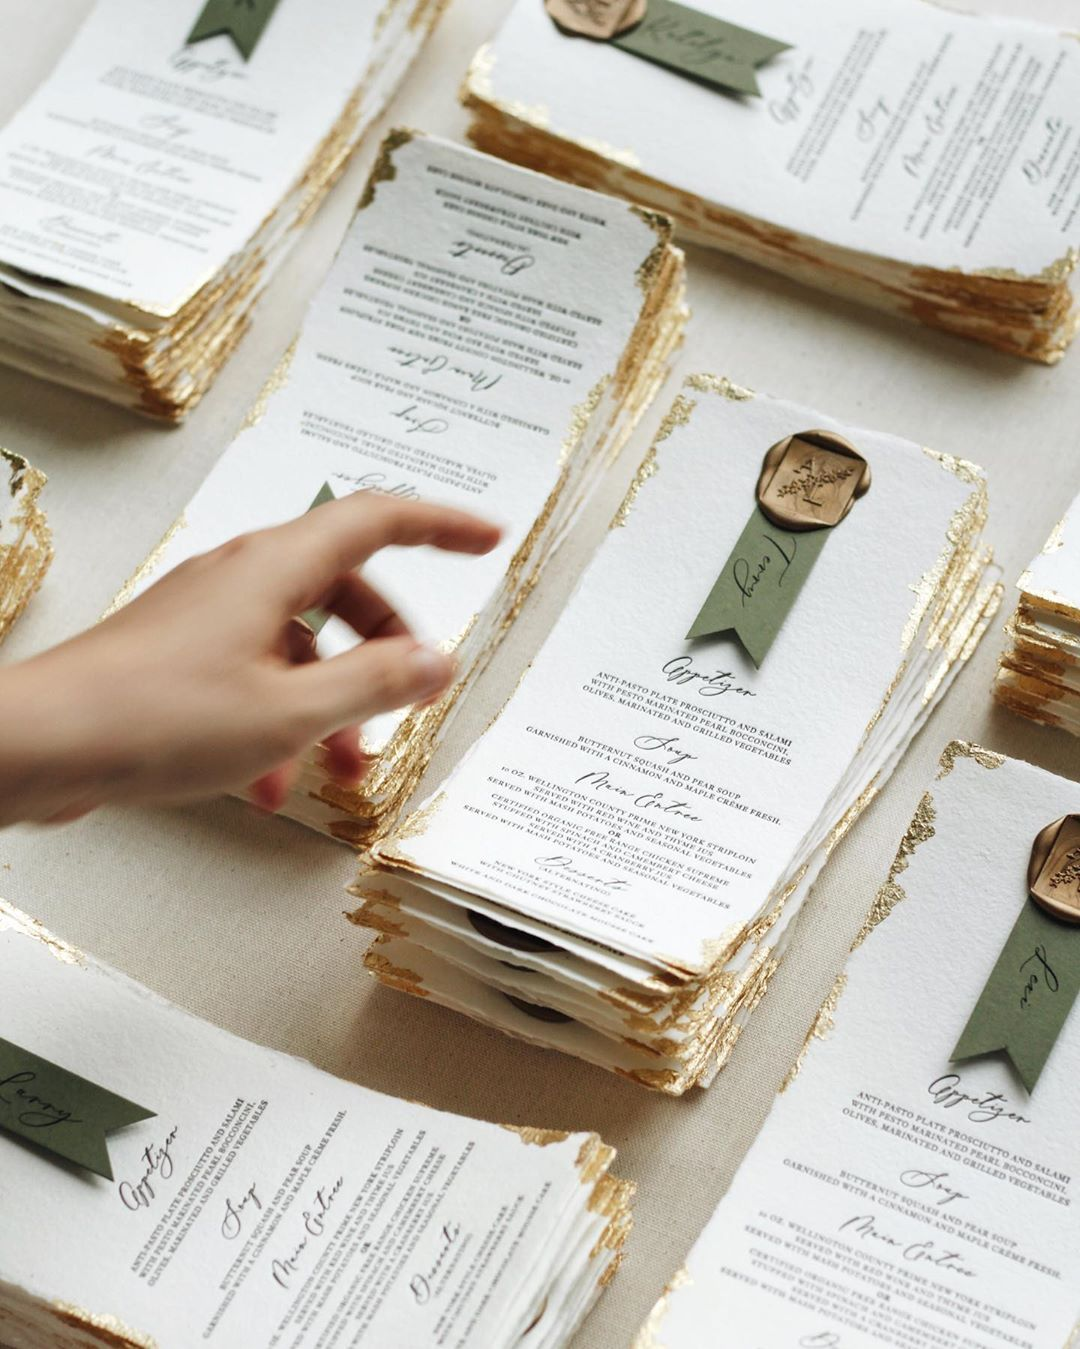 Wedding menus with name cards and wax seal printed letterpress on handmade paper + gold leaf edges